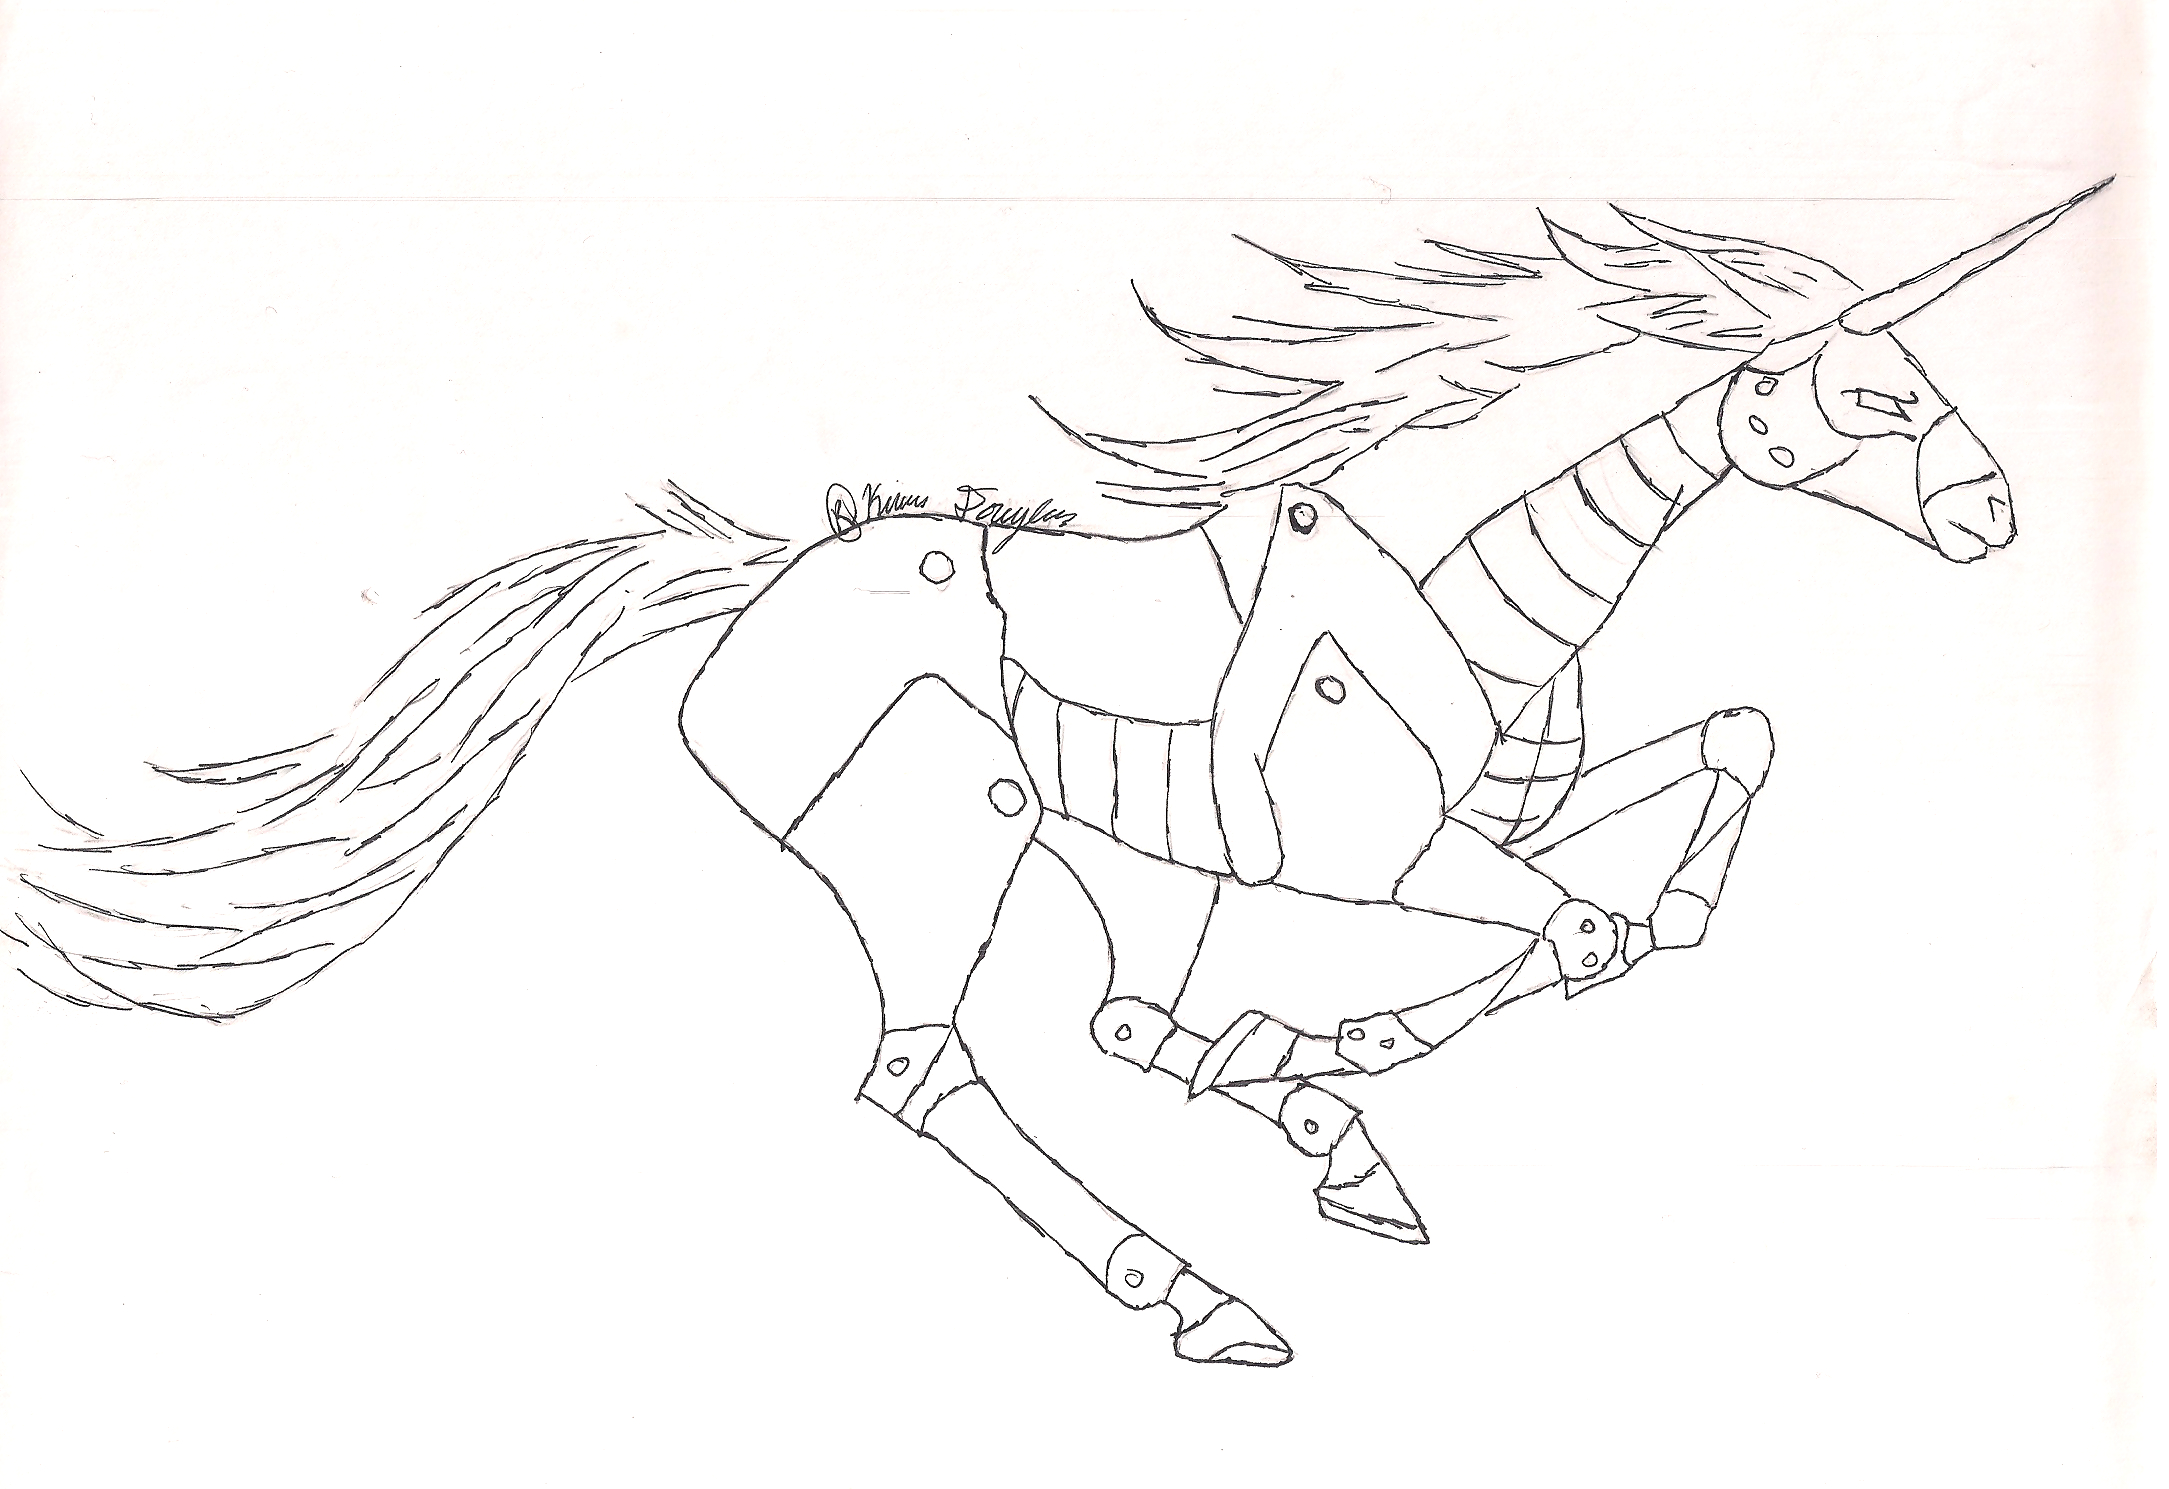 Line Drawing Reddit : Robot unicorn line art by kdougfang on deviantart